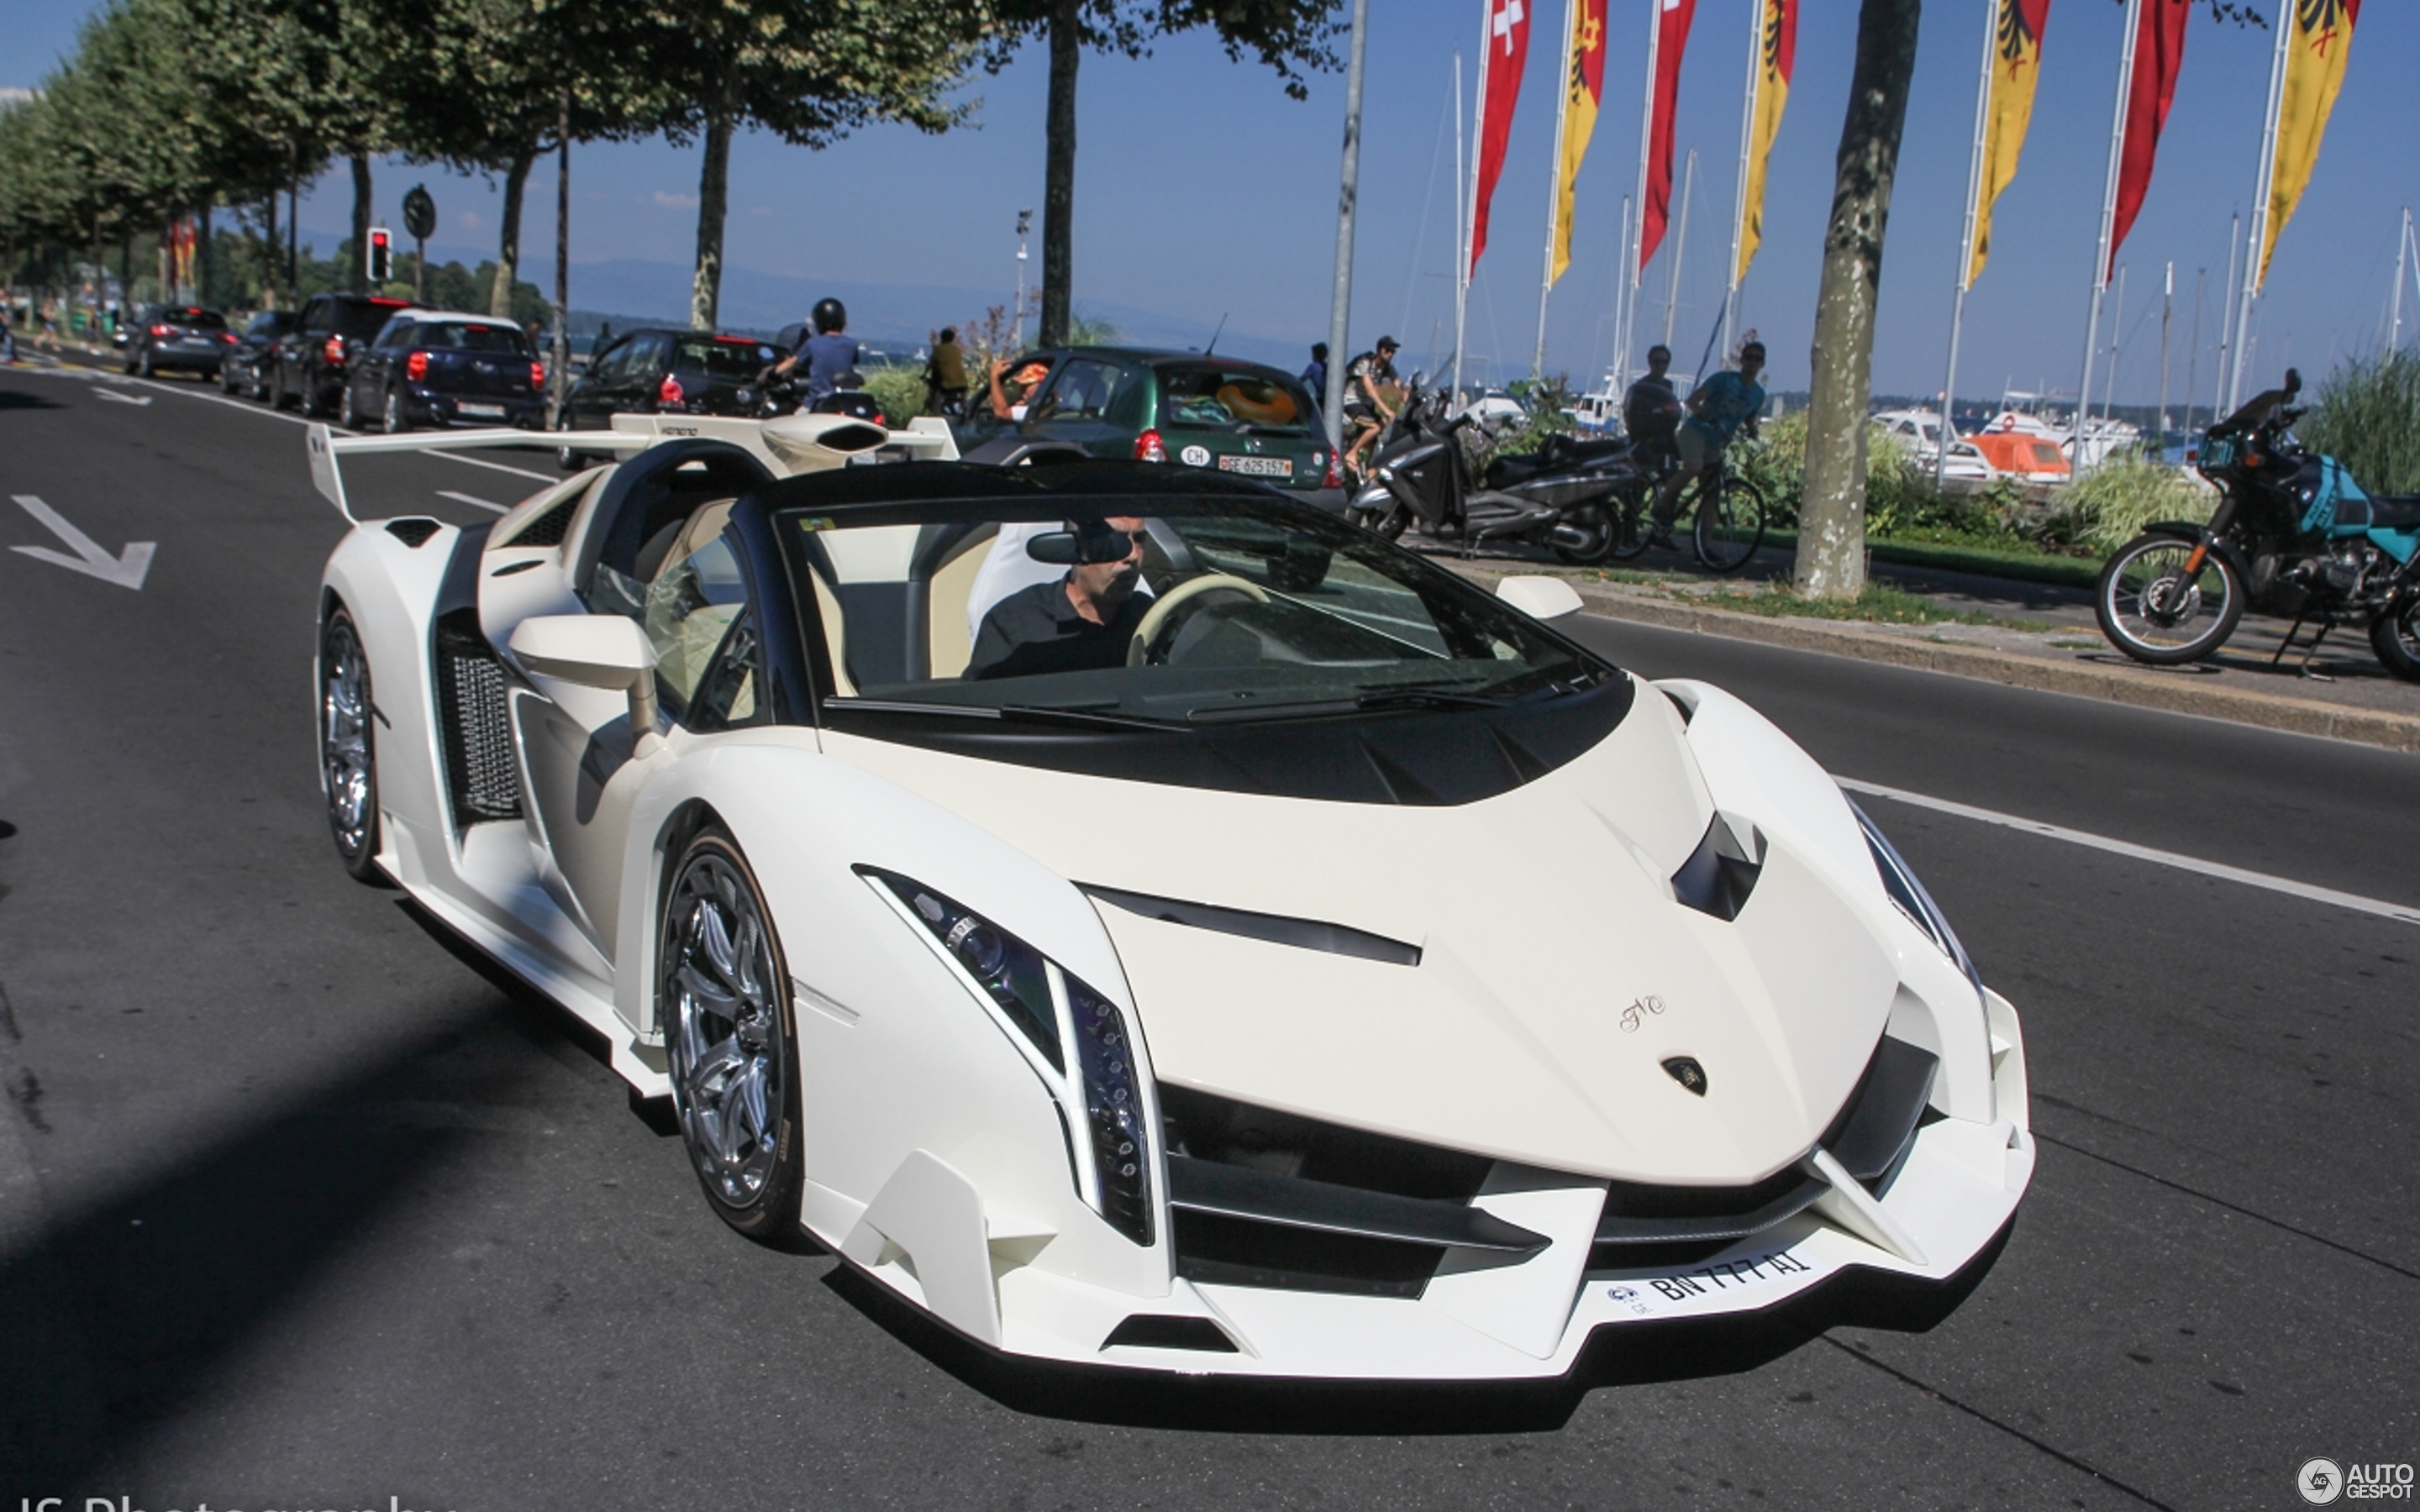 Lamborghini Veneno Roadster - 31 August 2015 - Autogespot